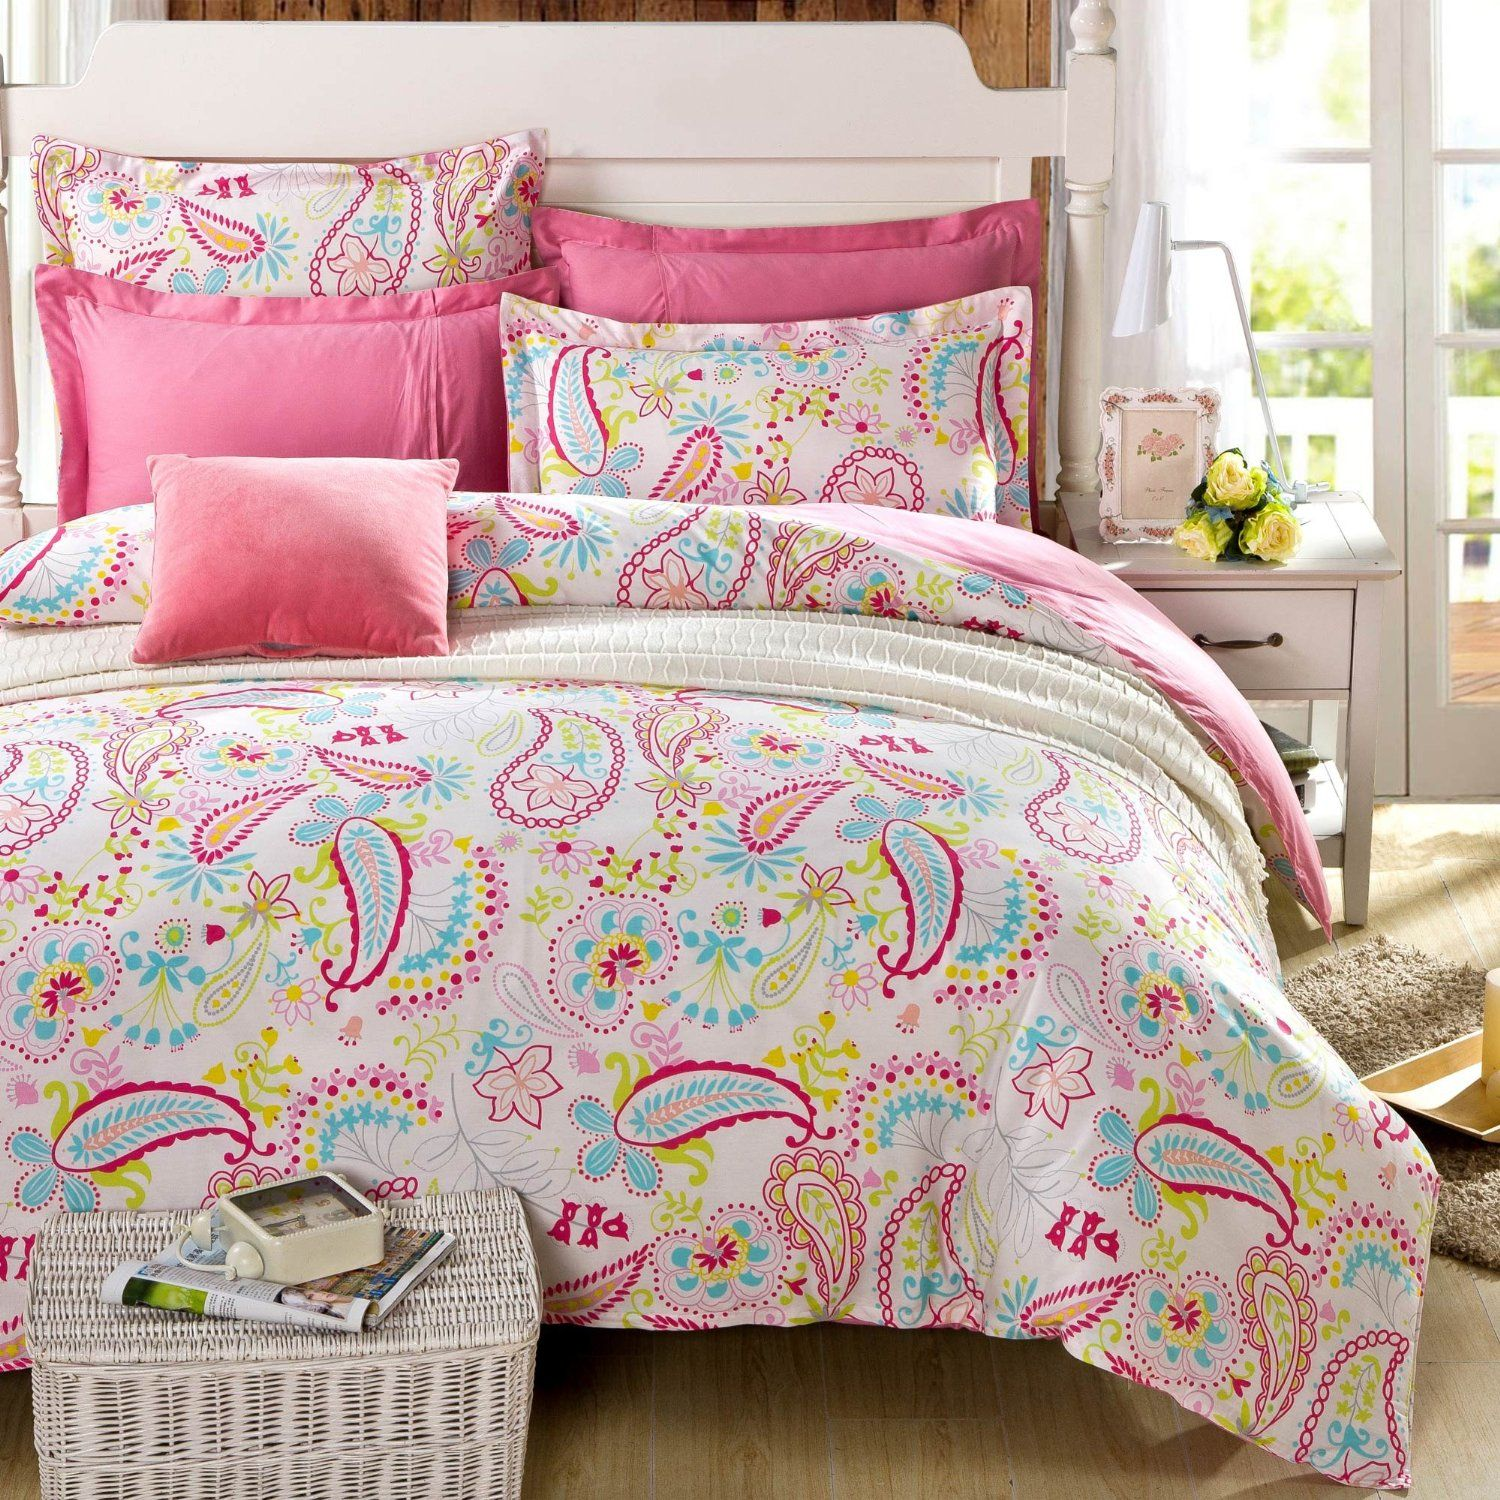 Bed sheets designs for girls - Cliab Paisley Bedding Pink Full For Teen Girls Duvet Cover Set 100 Cotton 5 Pieces